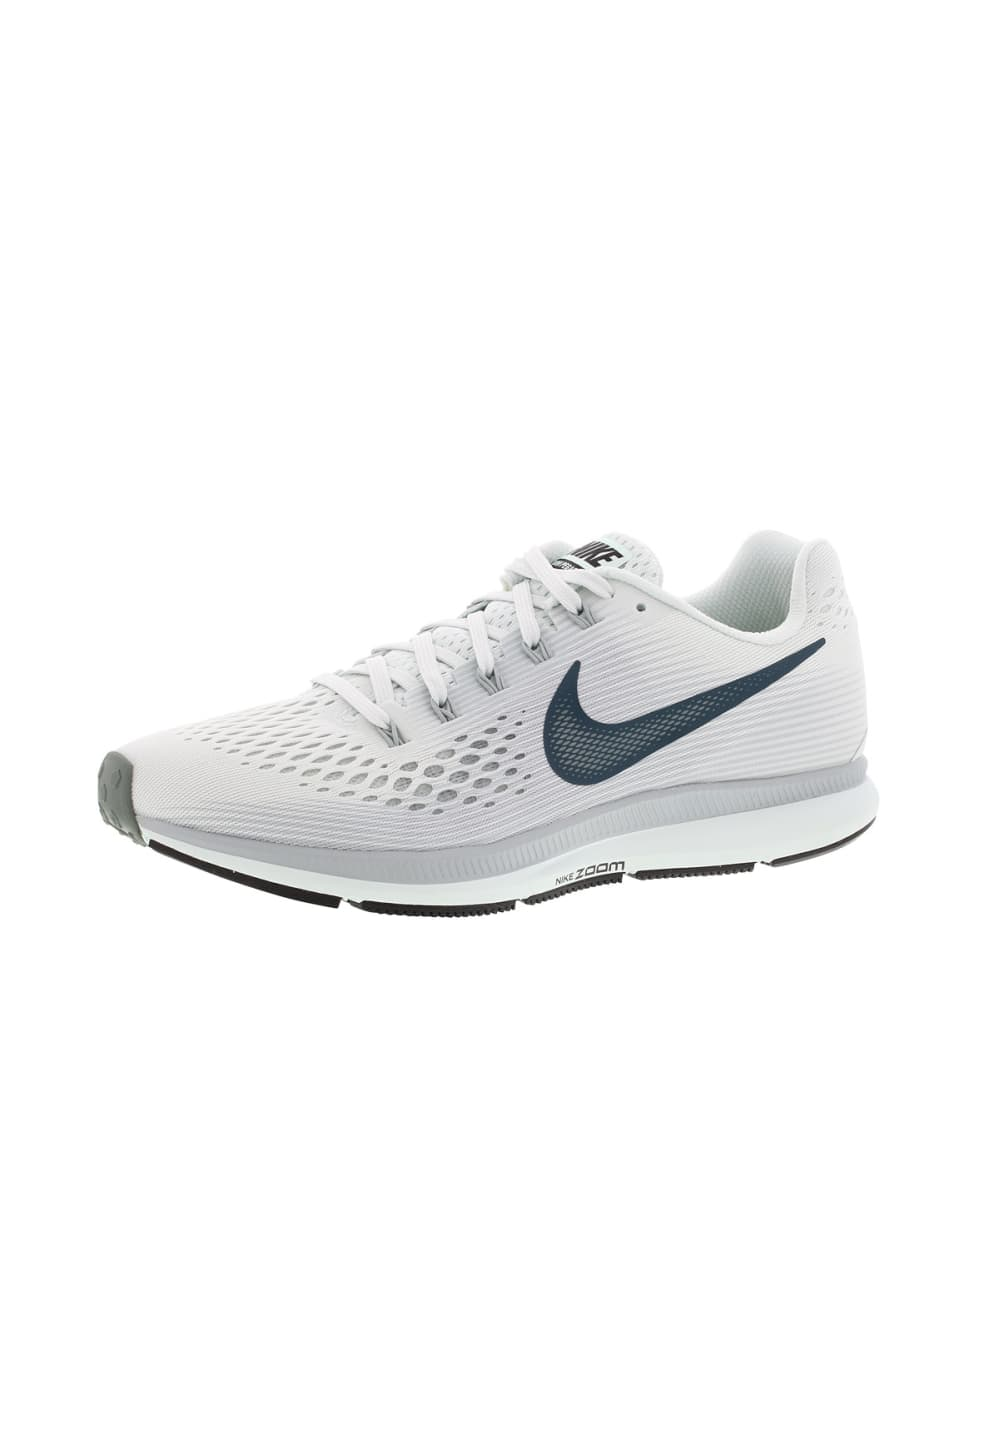 the best attitude 31a7b bb24e Nike Air Zoom Pegasus 34 - Running shoes for Women - Grey